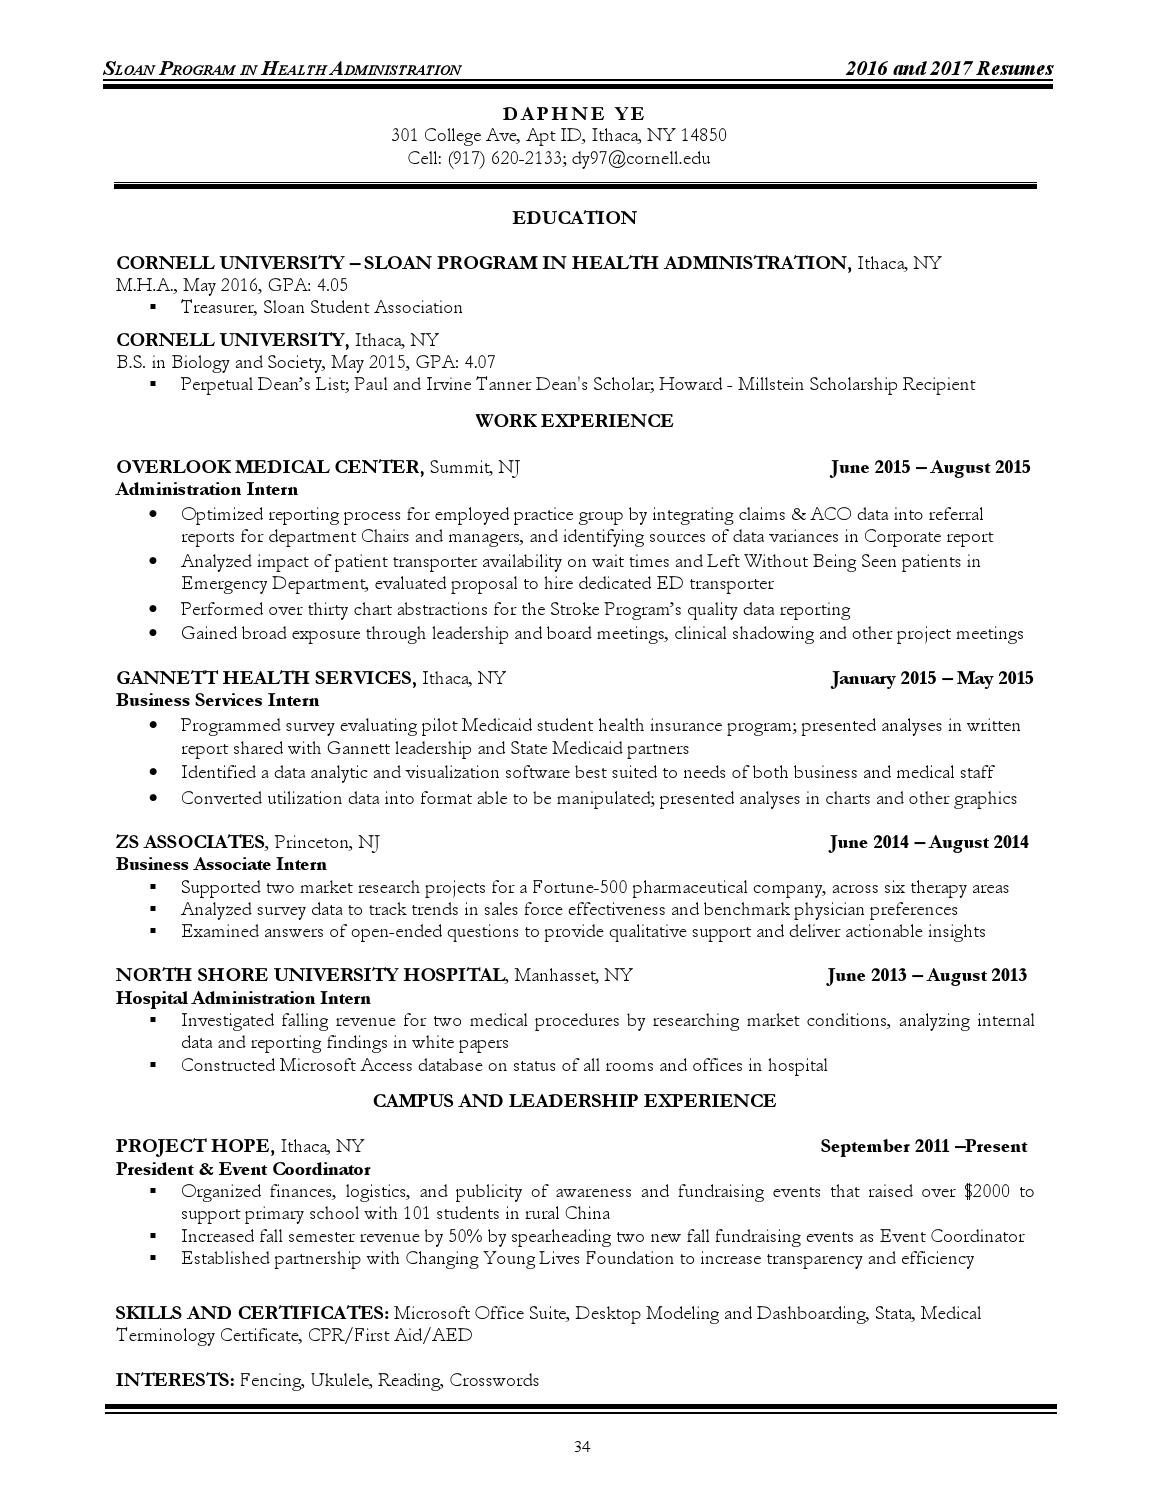 Sloan resume book 2016-2017 issuu by College of Human